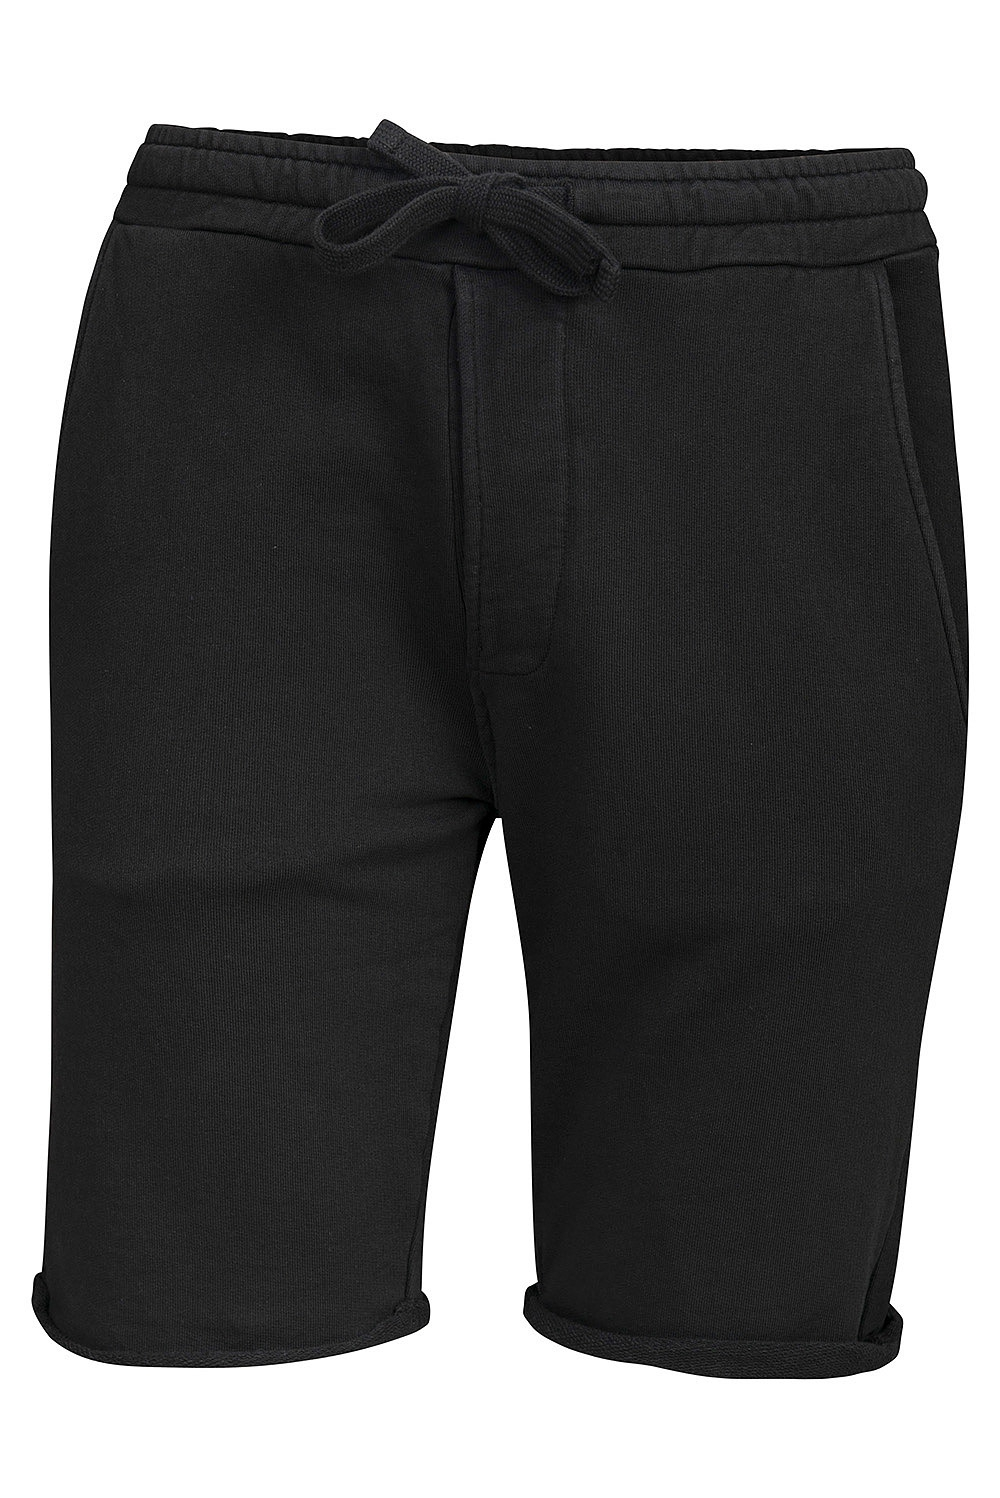 Slim body Black Plain Trouser 0